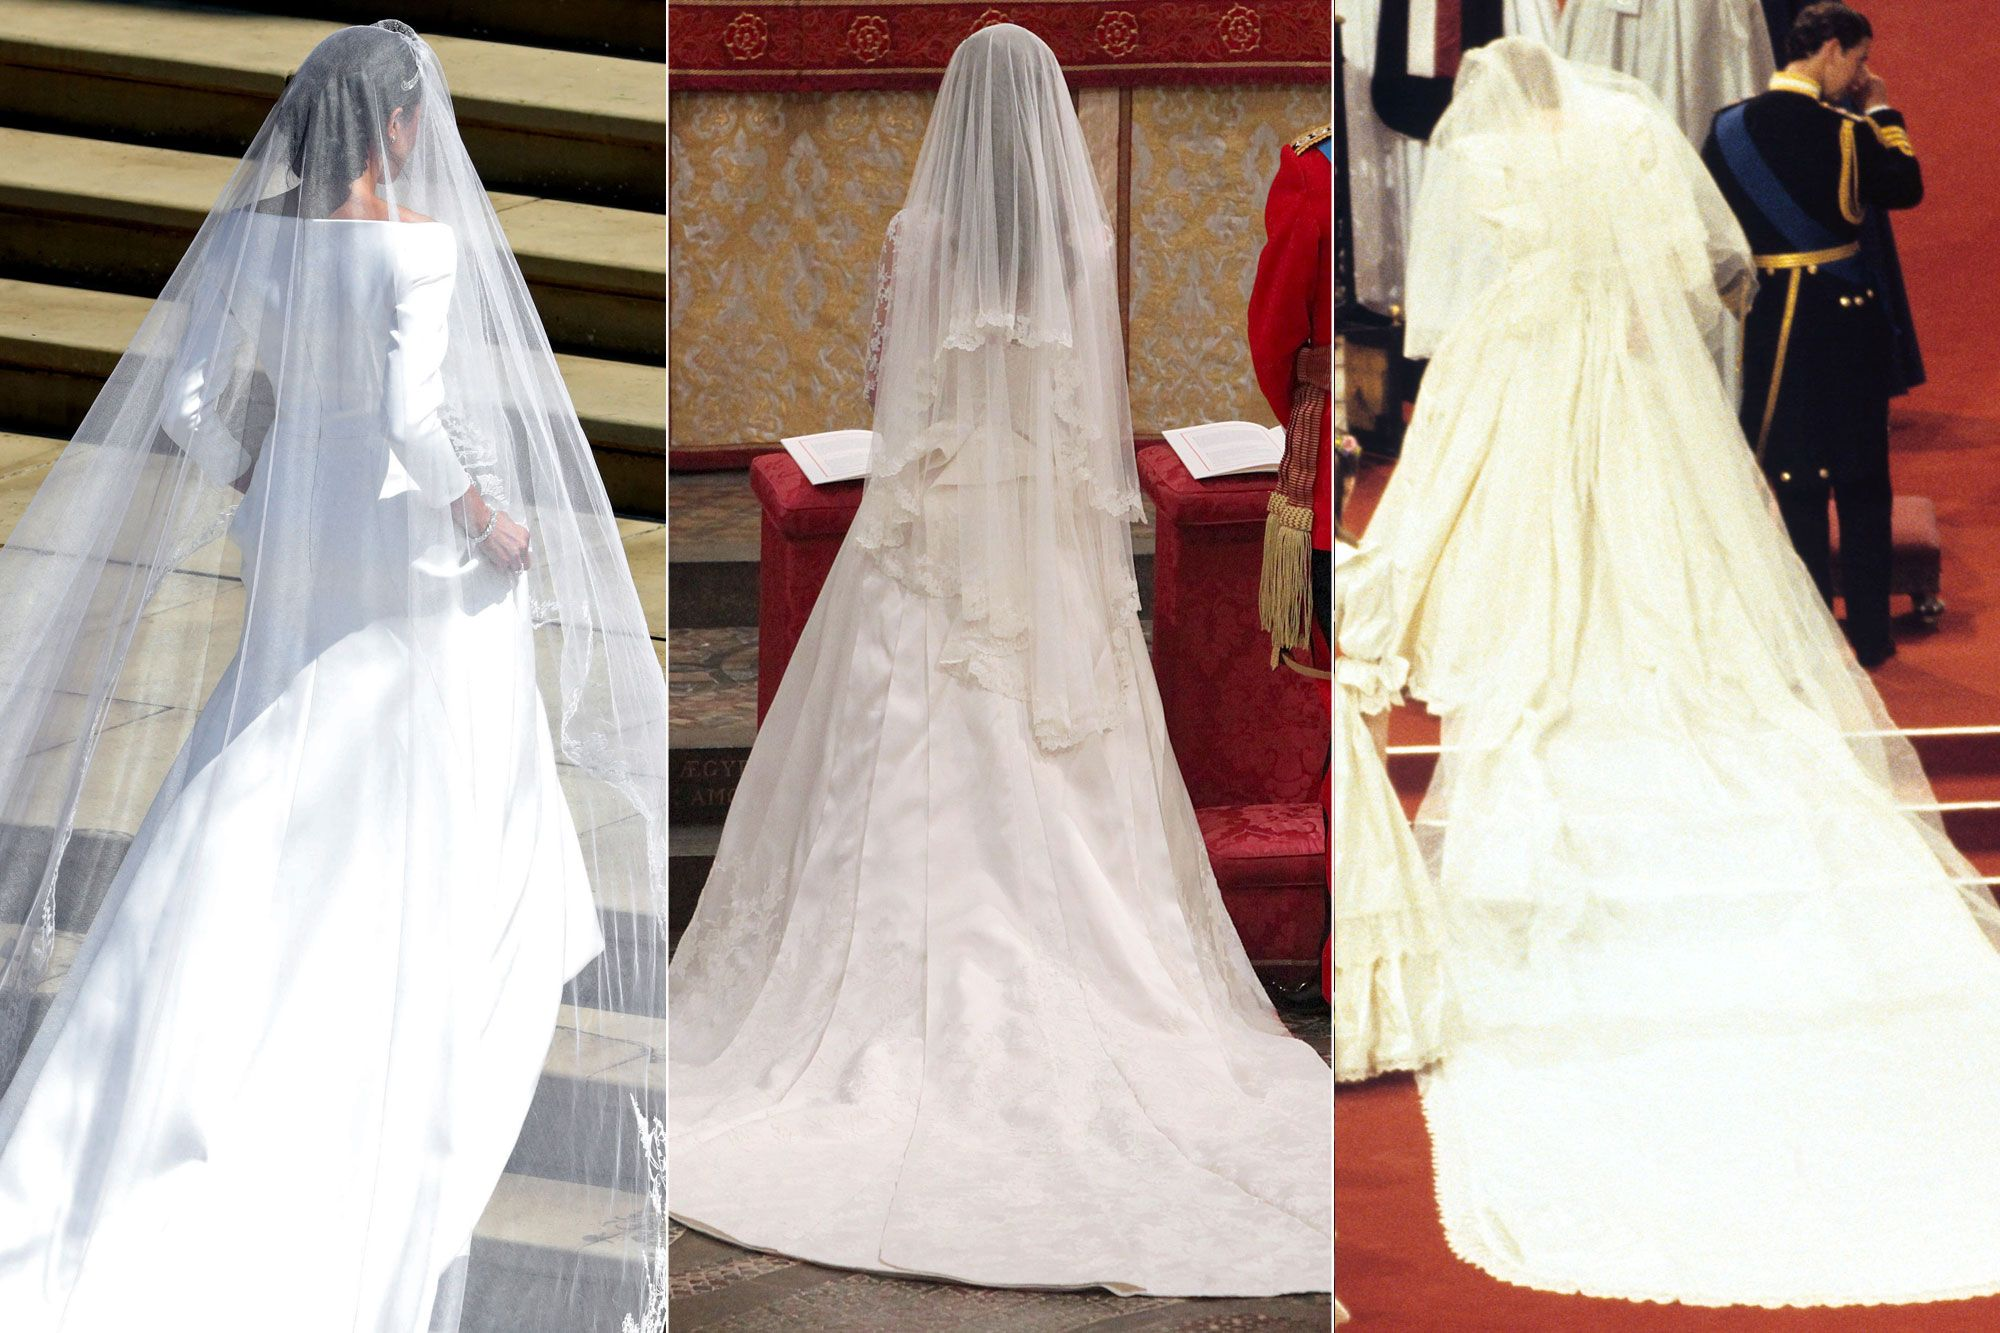 2020 Wedding Trends 5 Trends You Should Know Royal Wedding Harry Harry And Meghan Wedding Harry Wedding